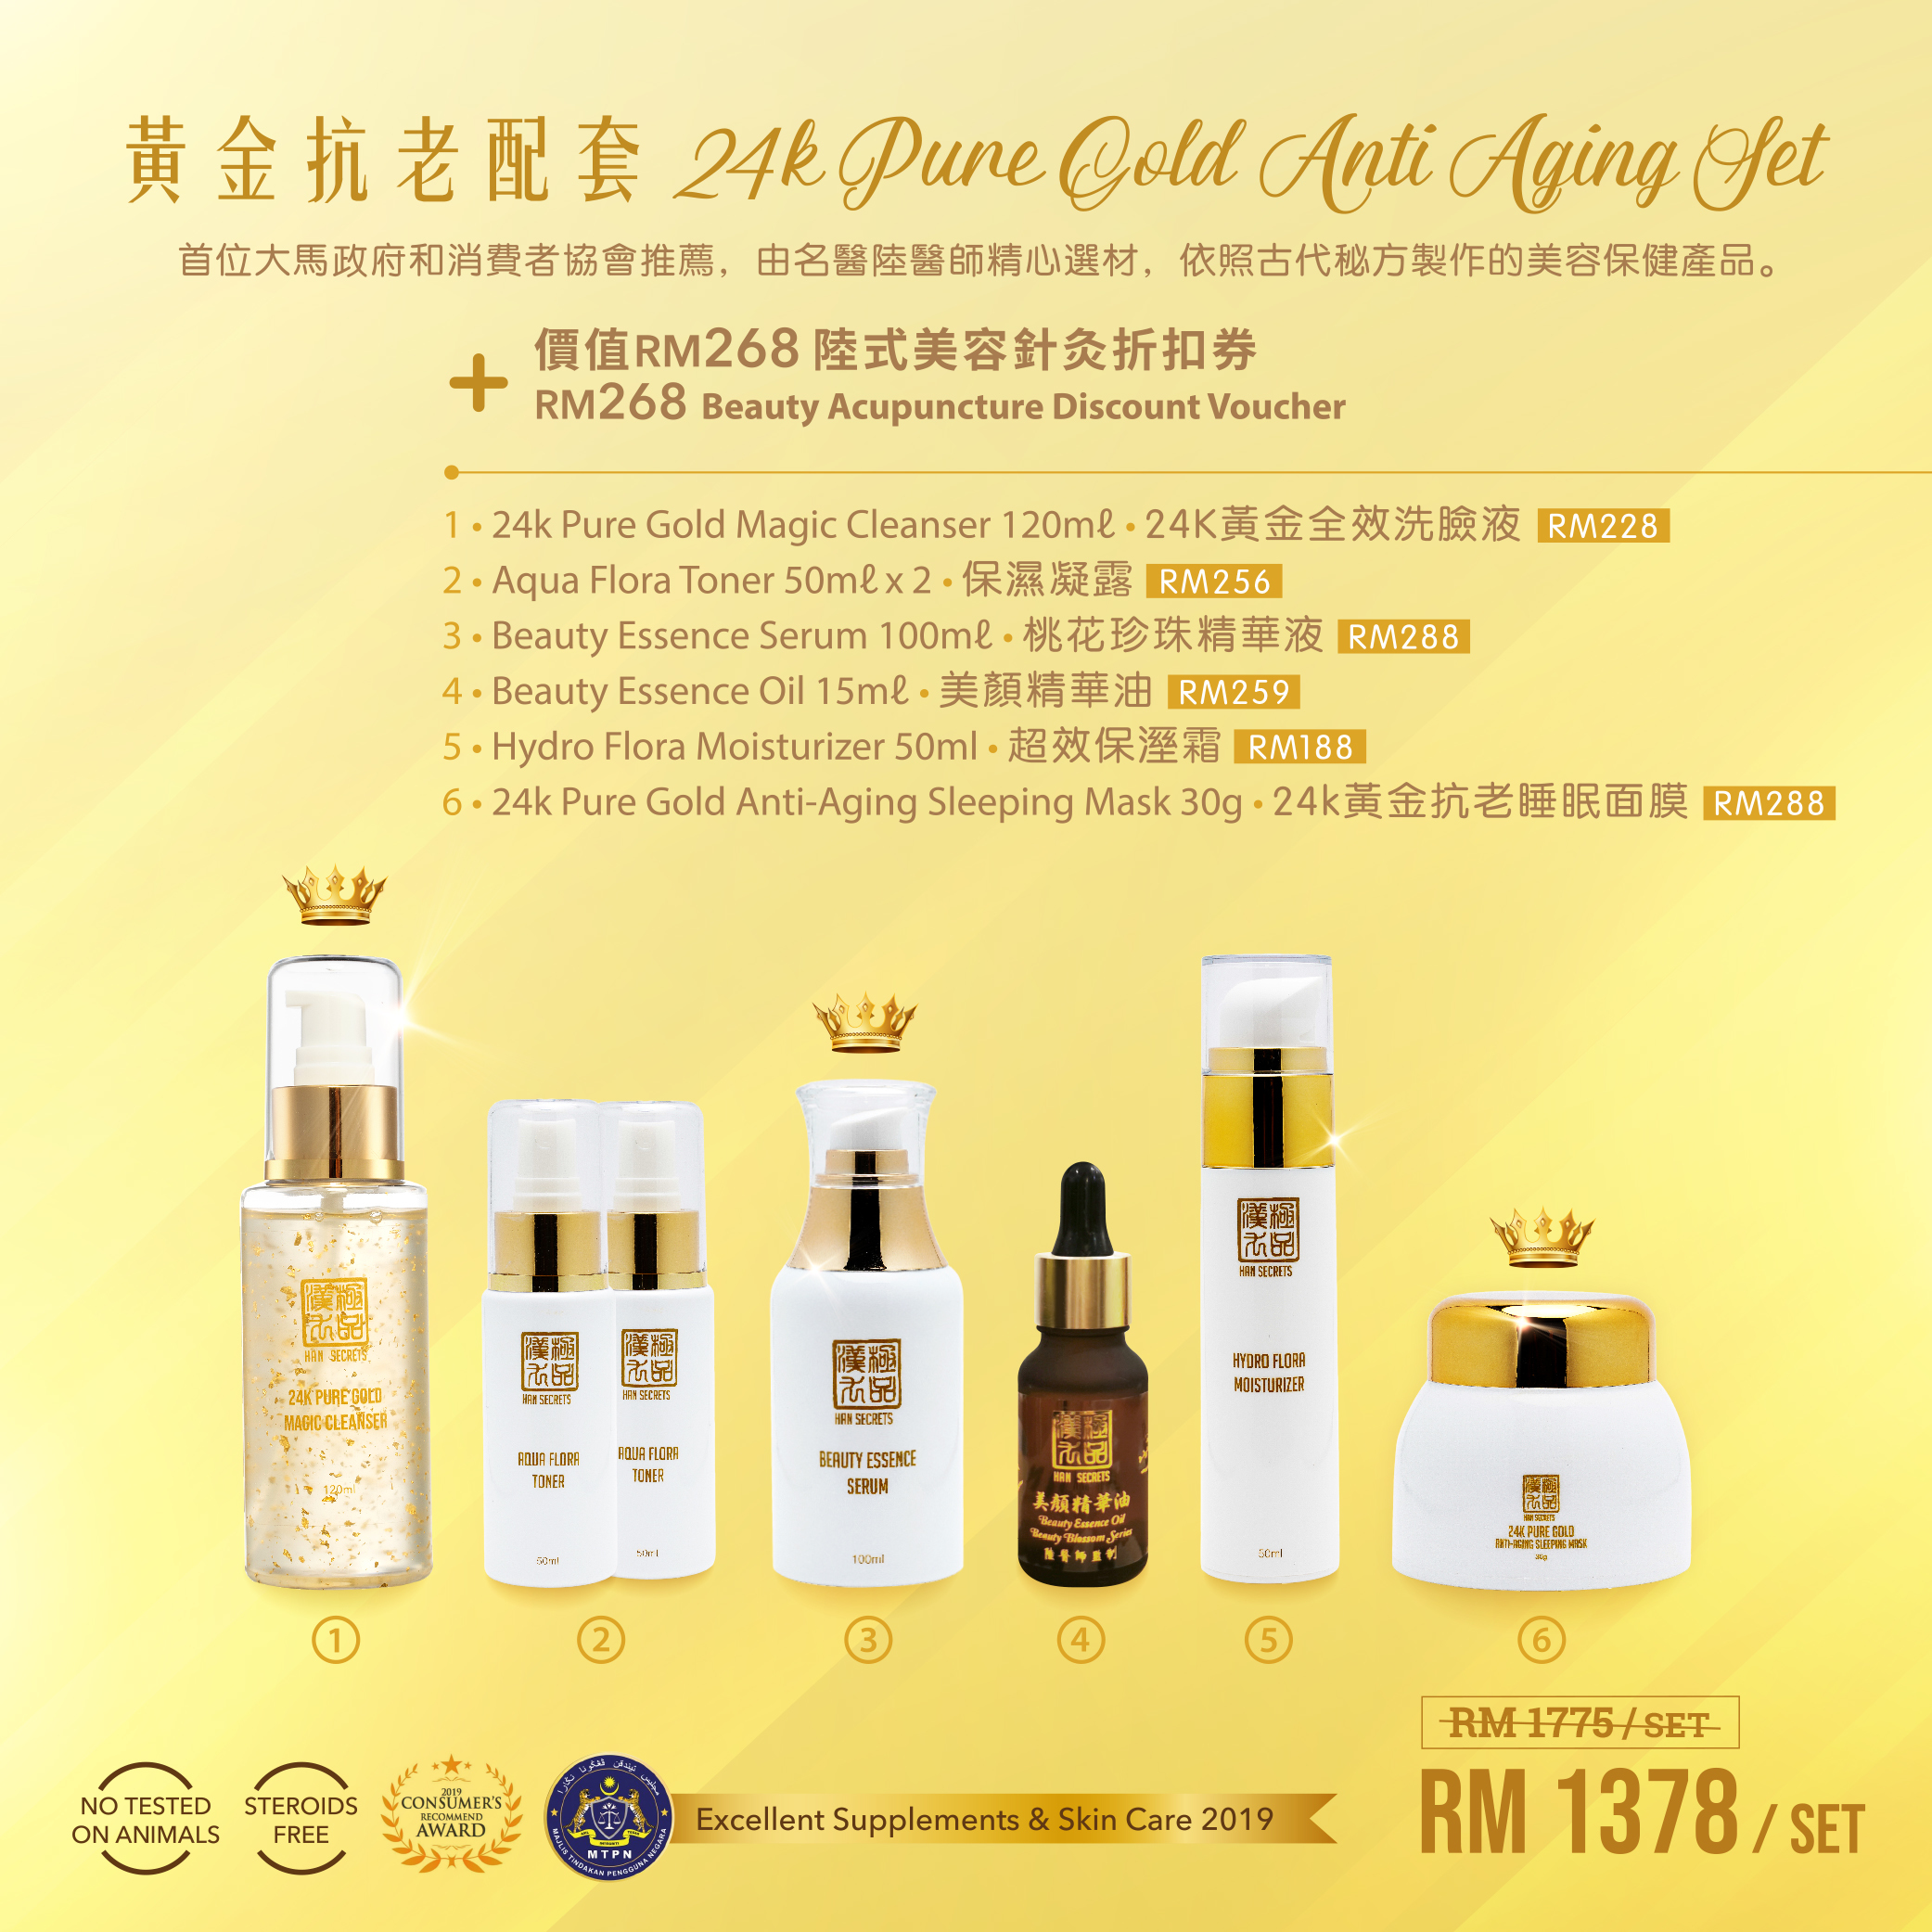 Han Secrets 24K Pure Gold Anti Aging Set.jpg